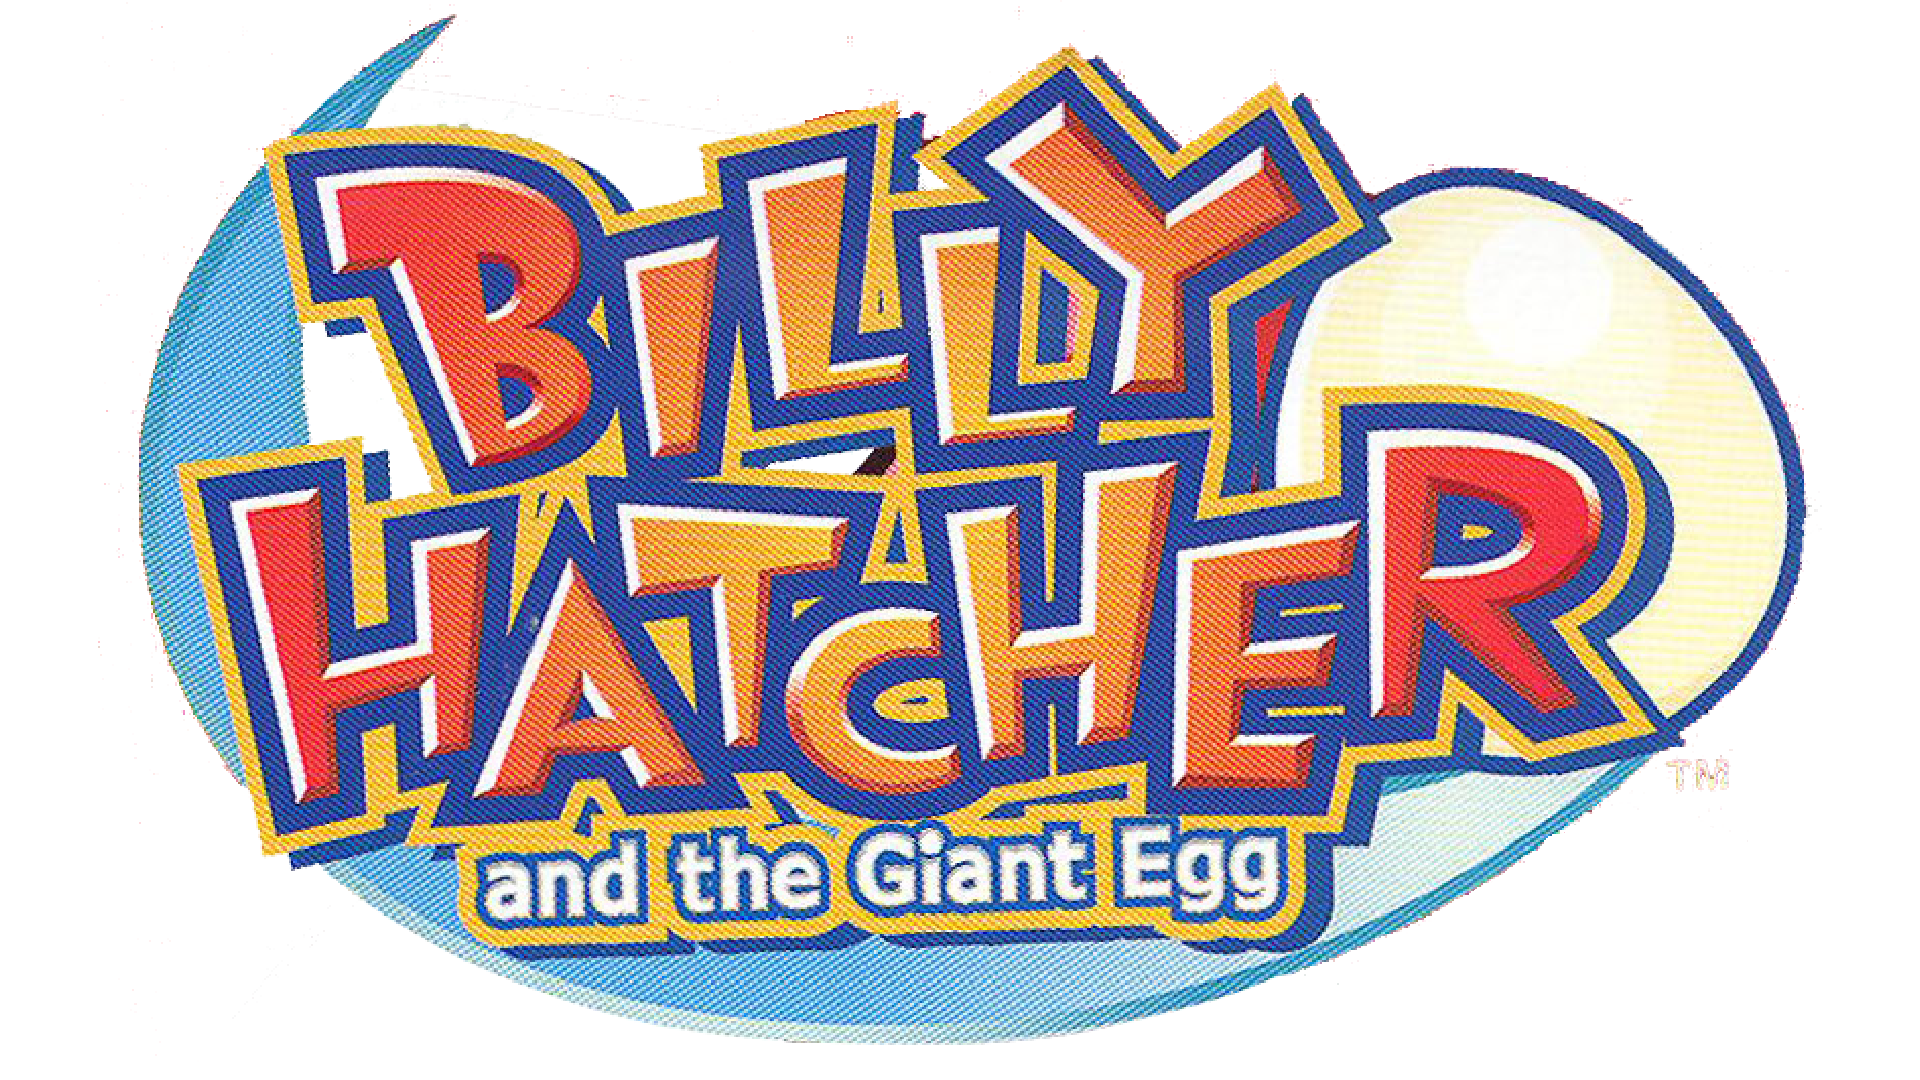 Billy Hatcher and the Giant Egg Logo